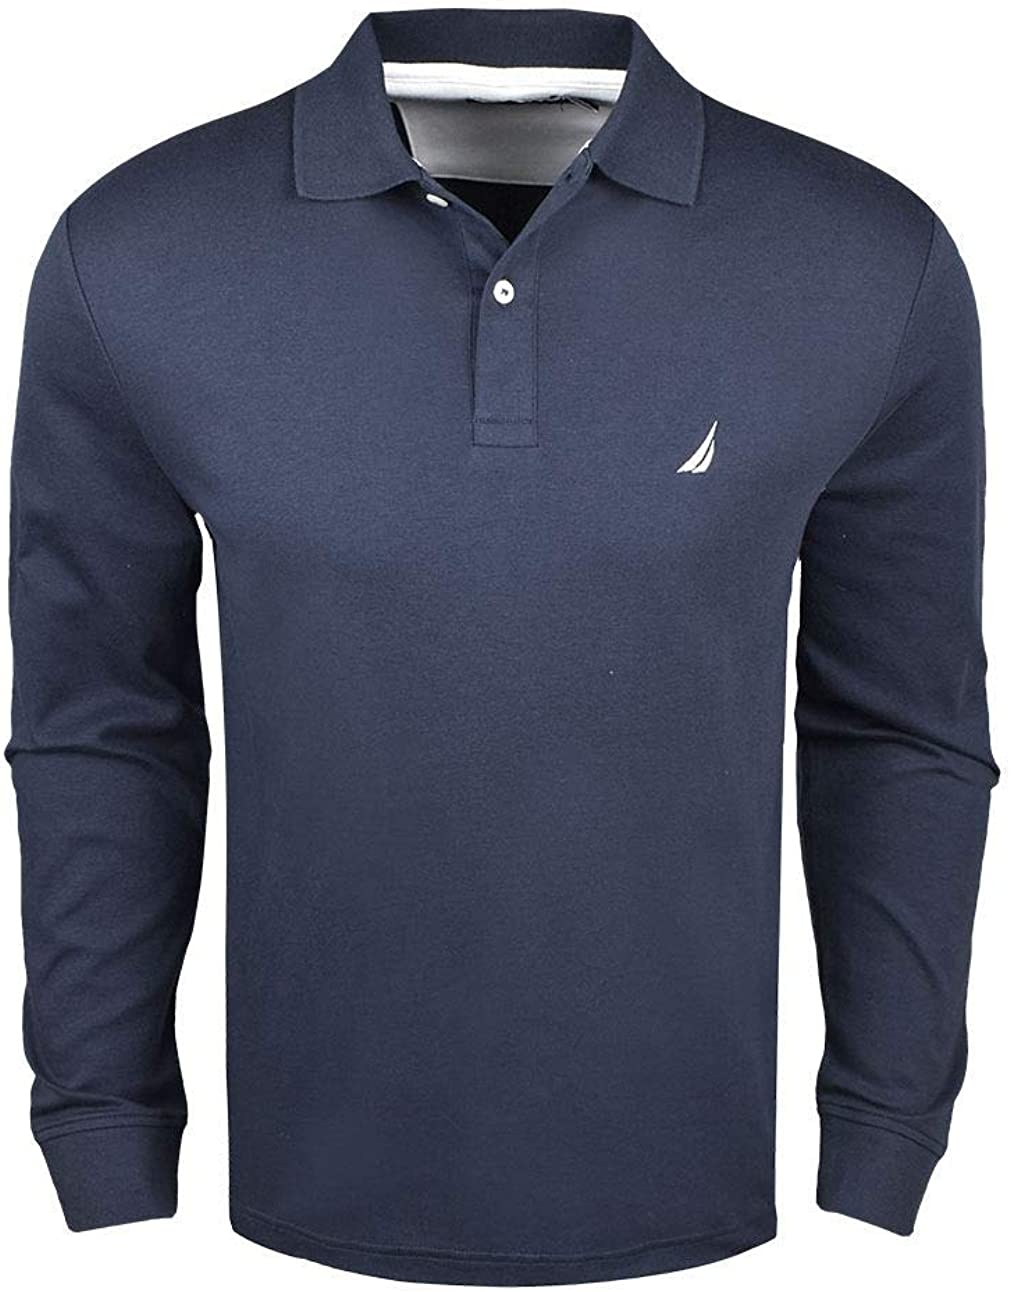 Nautica Long Sleeve Interlock Knit Polo Navy XL: Amazon.es: Ropa y ...